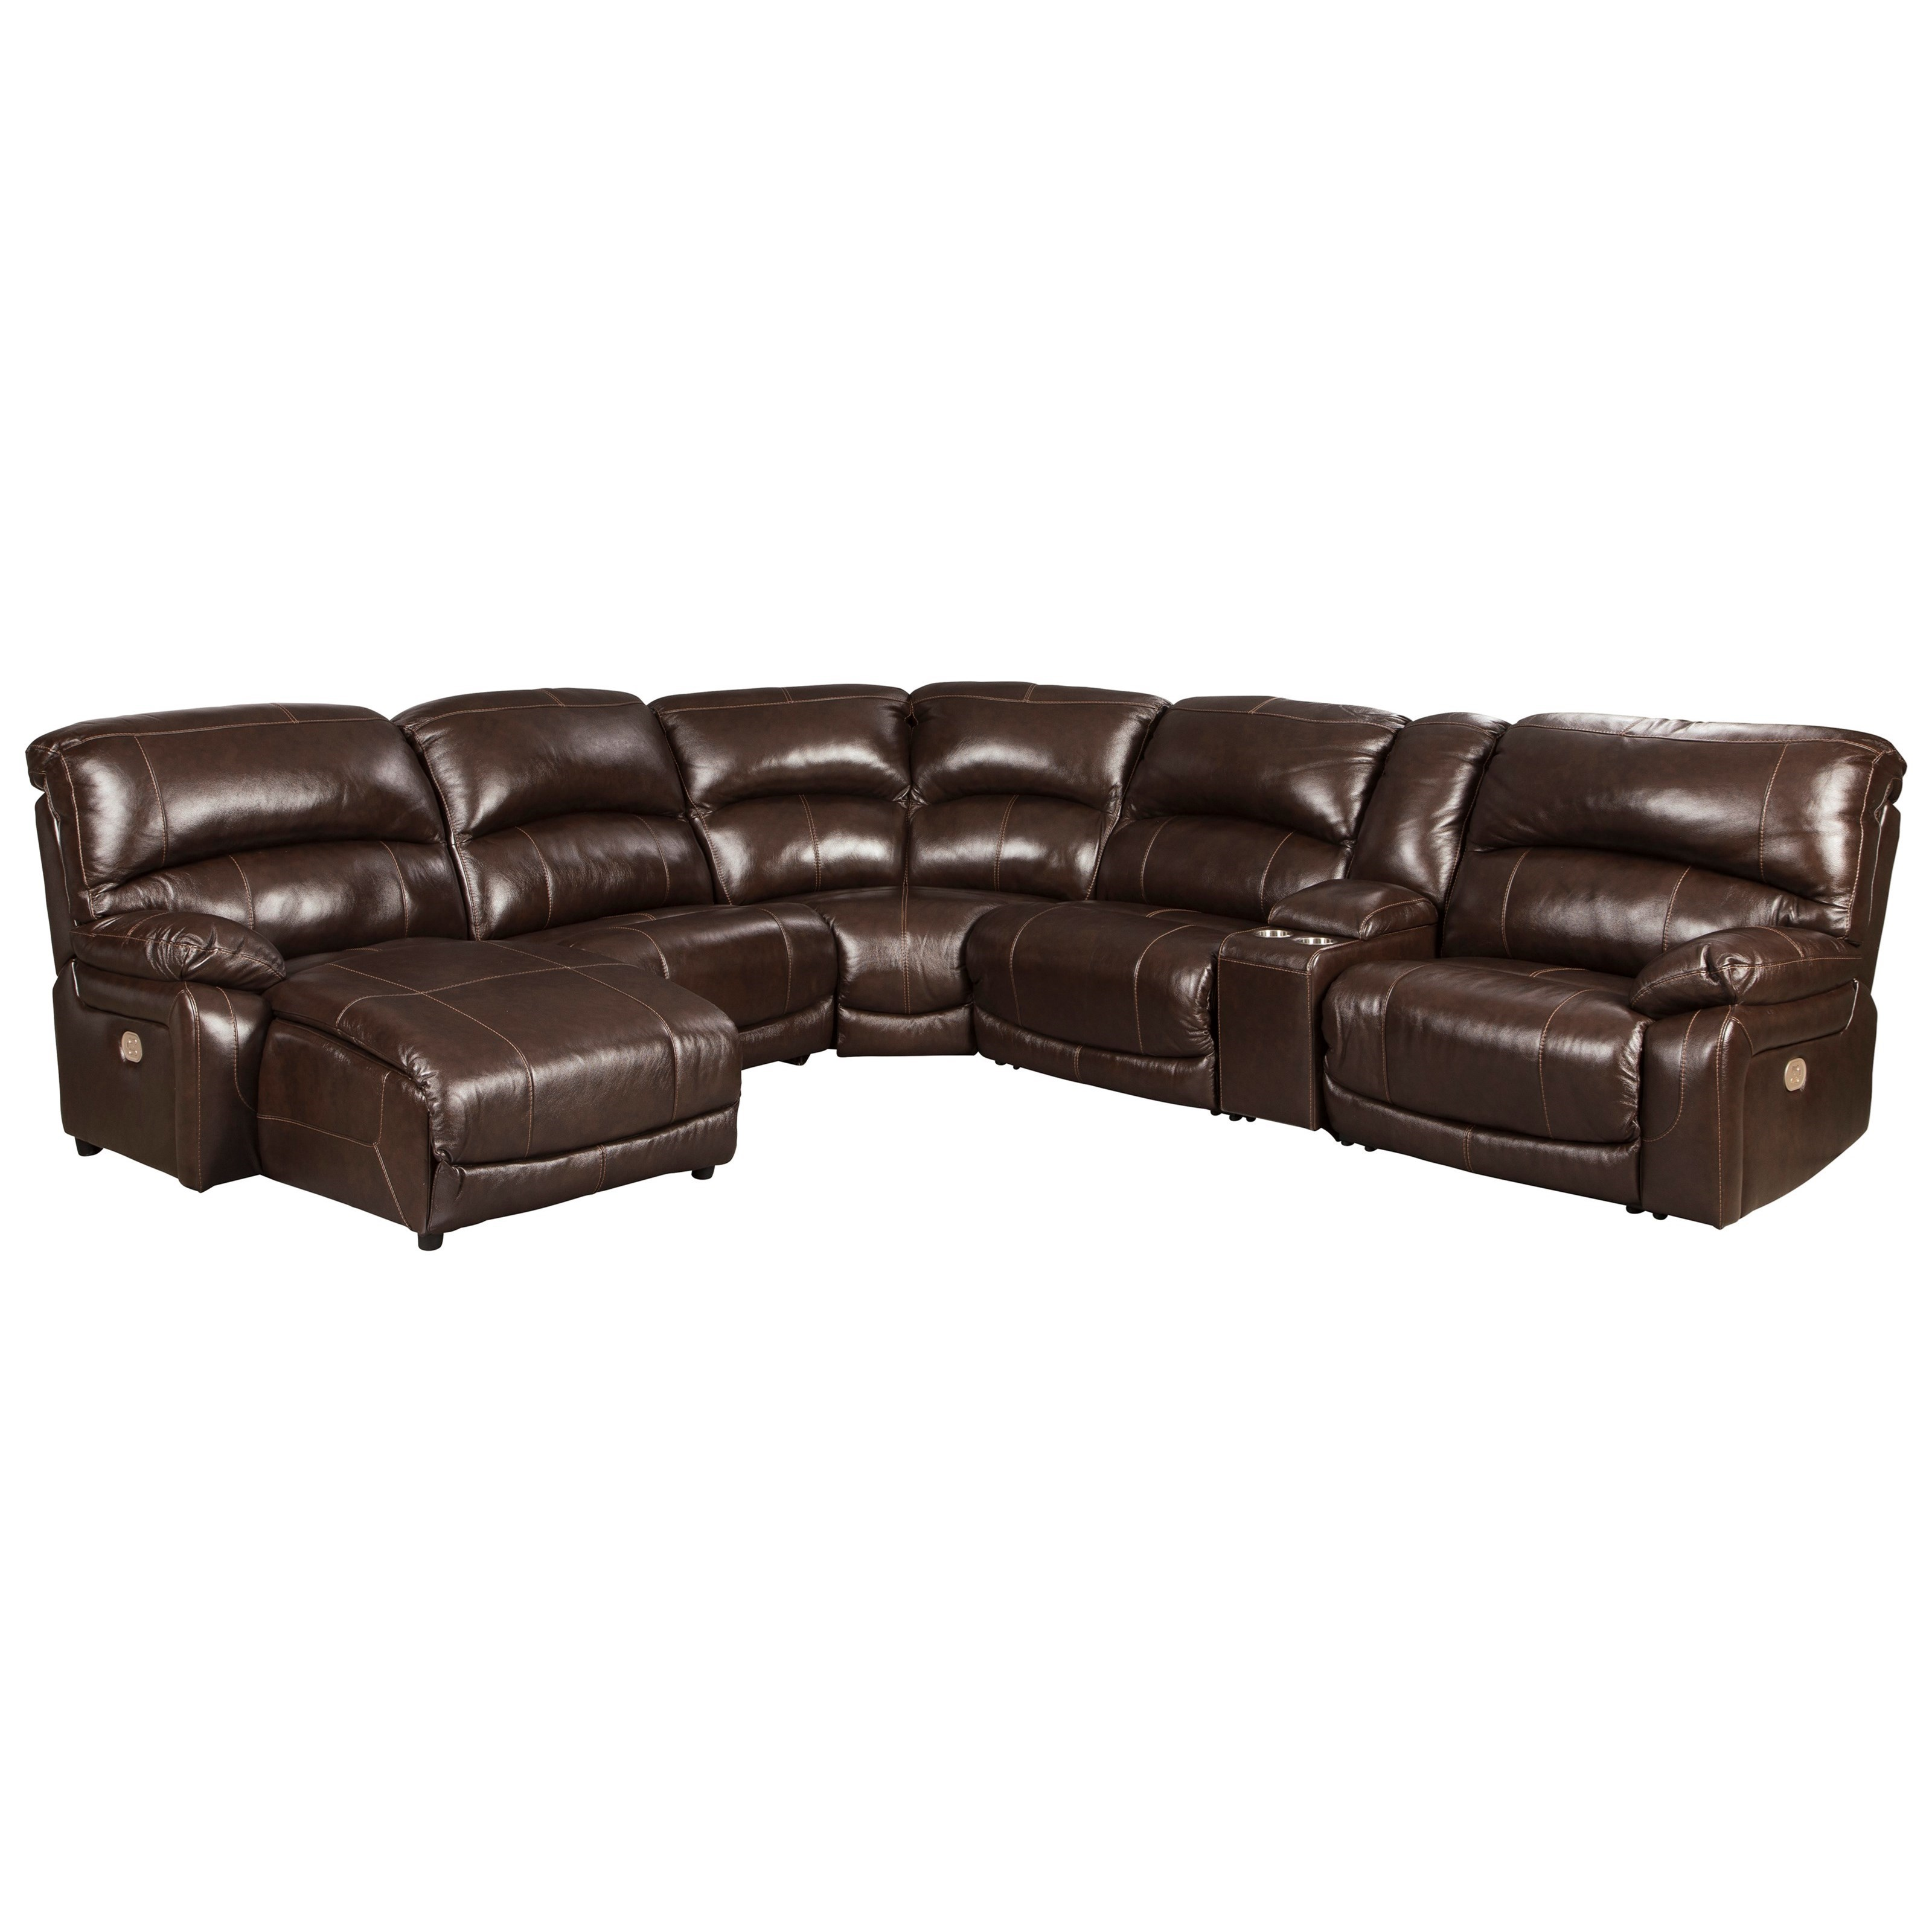 Hallstrung 5-Piece Reclining Sectional with Chaise by Signature Design by Ashley at Northeast Factory Direct